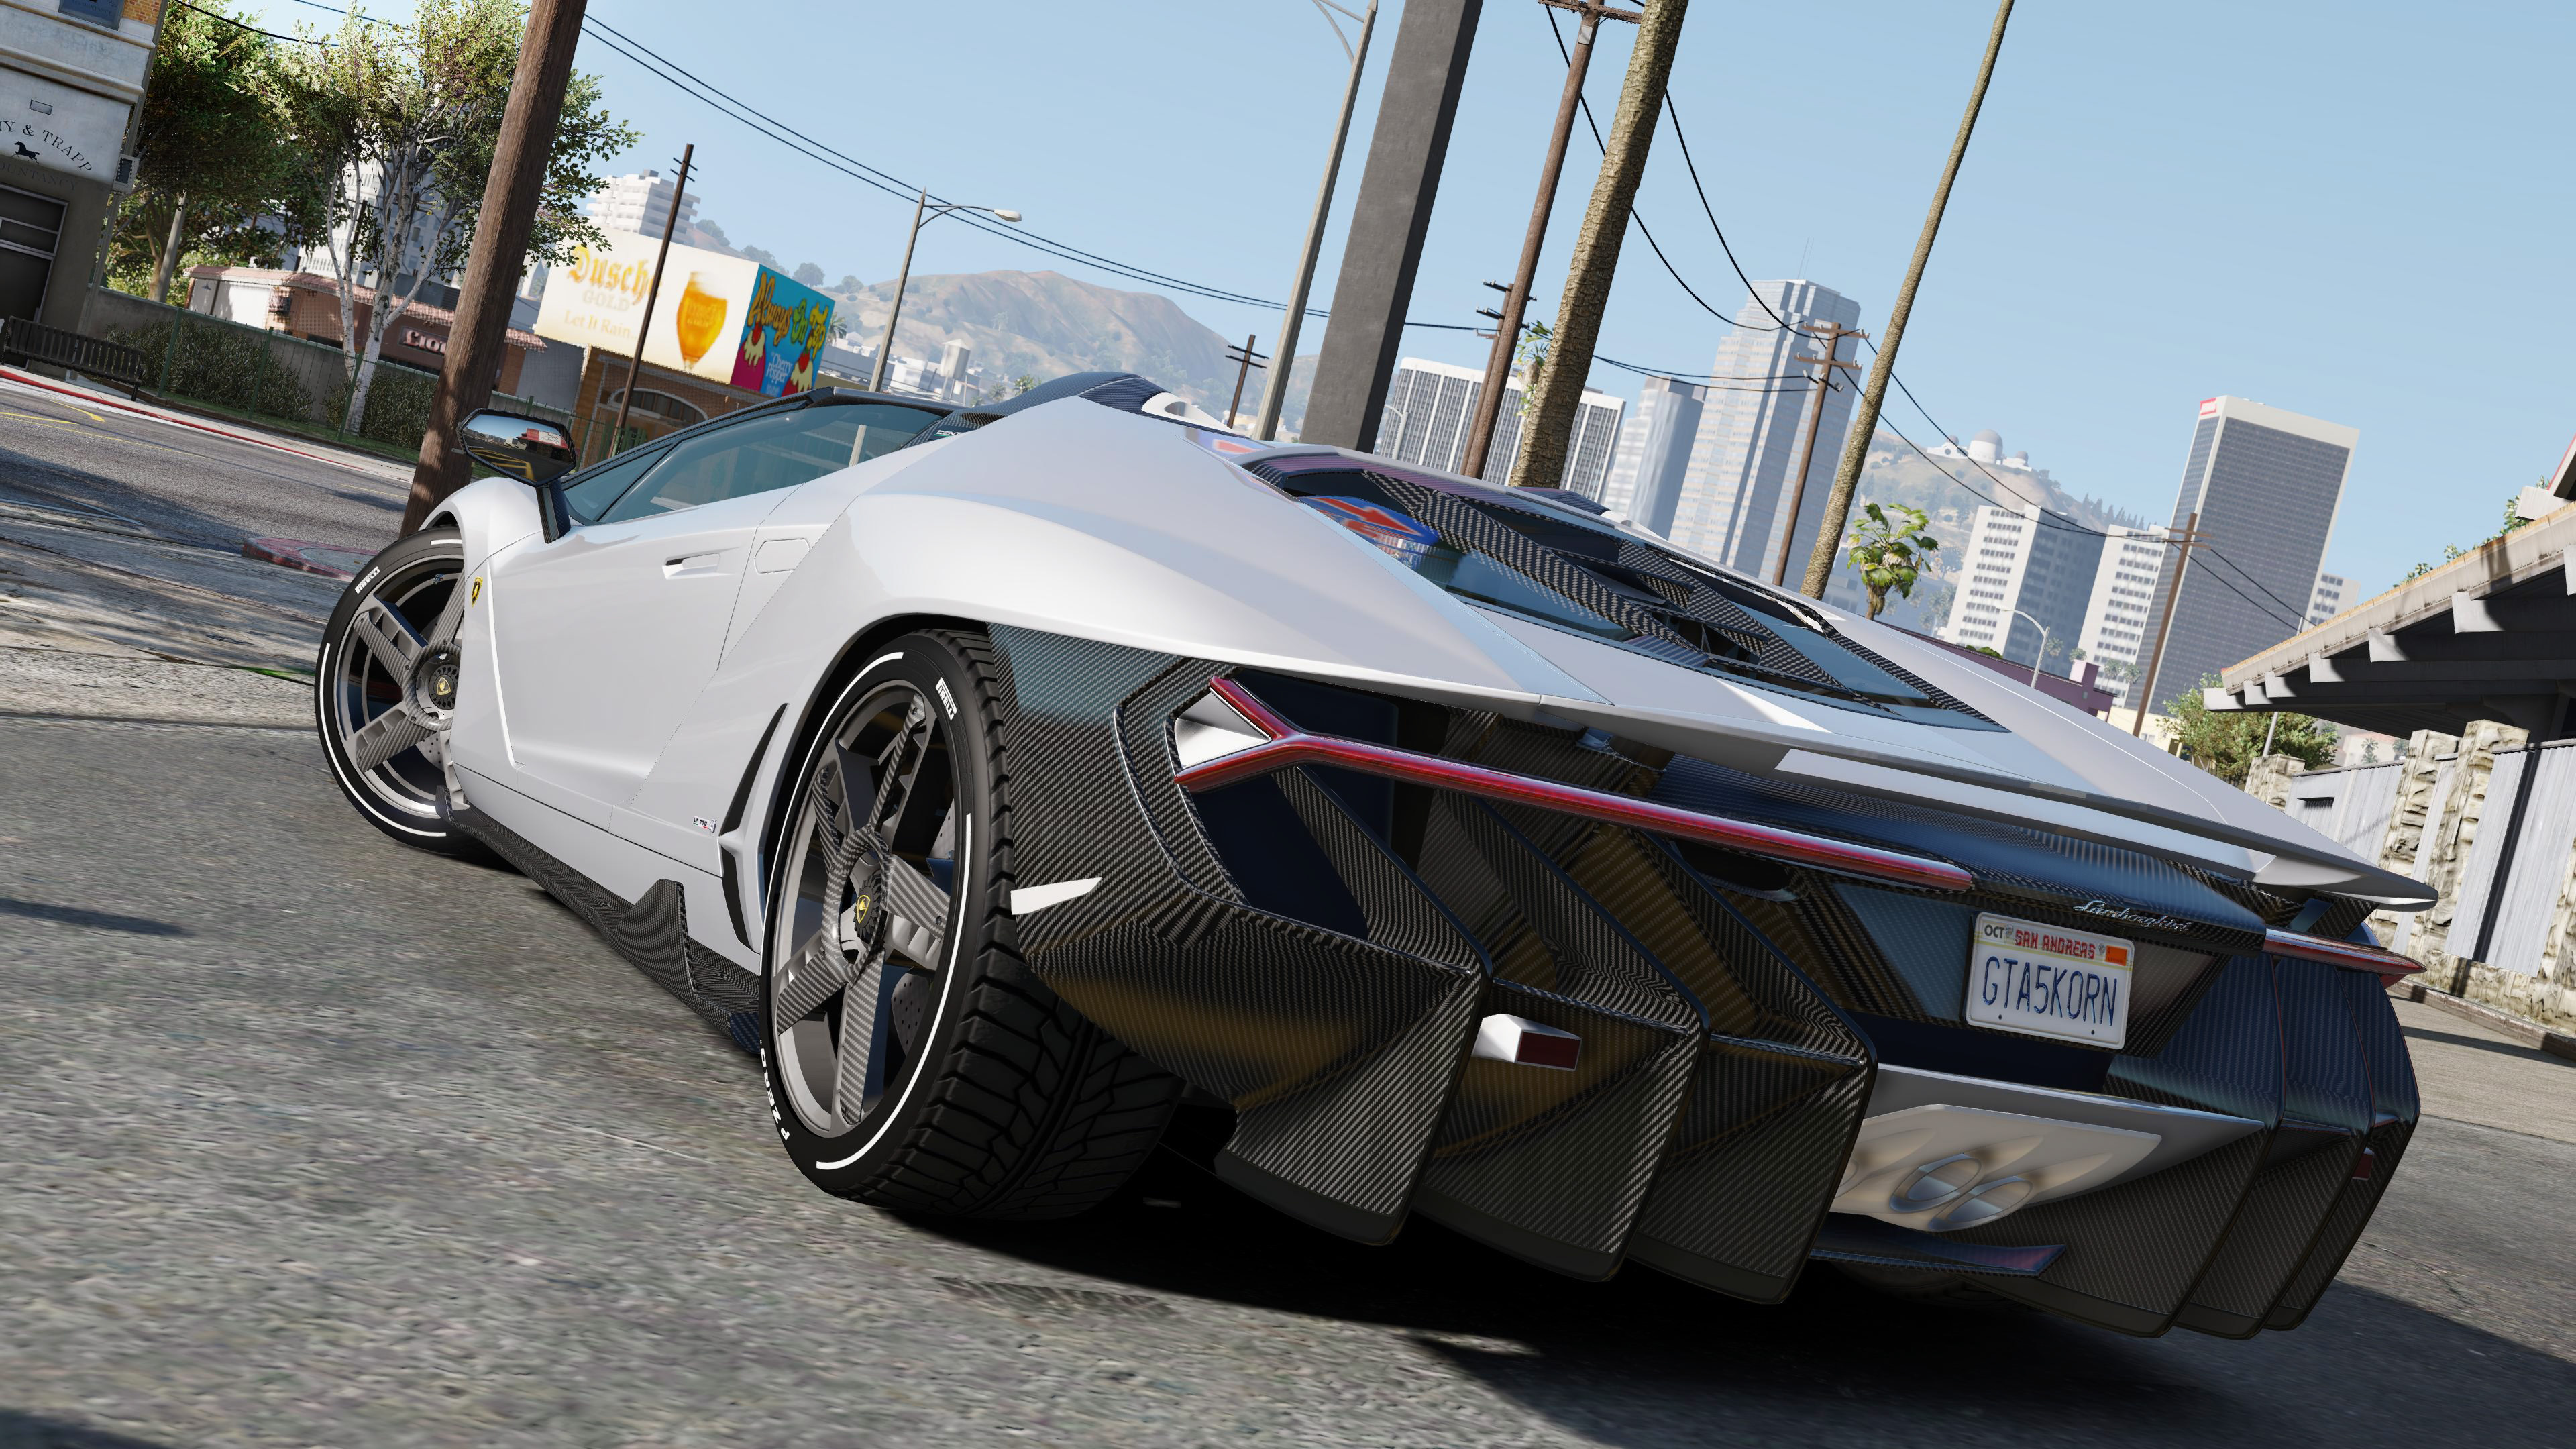 2017 Lamborghini Centenario LP 770-4 Roadster [Add-On / Replace] 1.1A